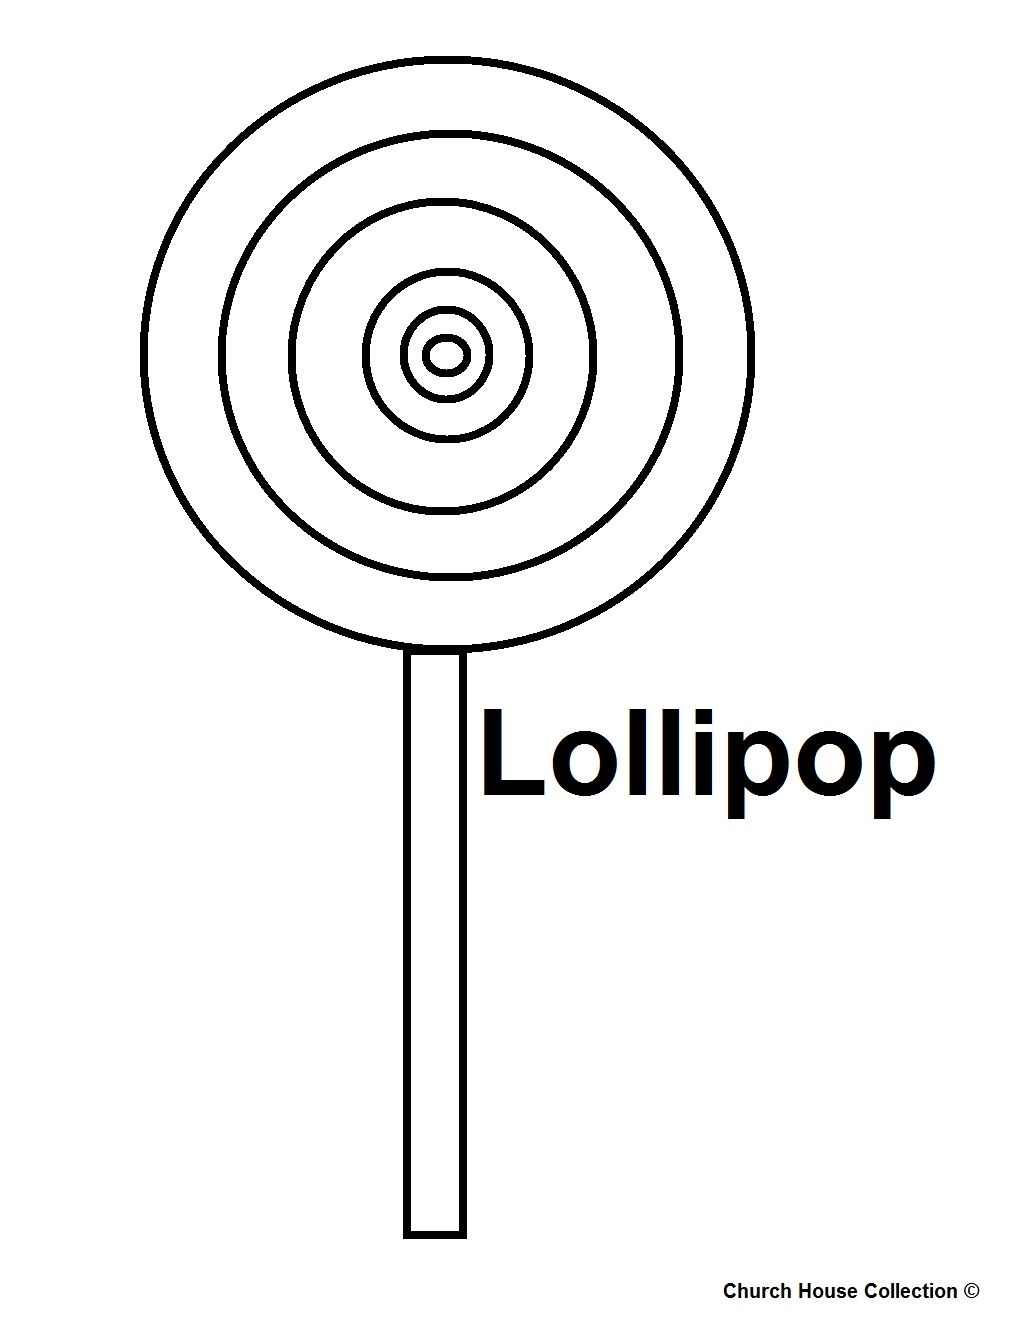 Lollipop Coloring Page Jpg 1 019 1 319 Pixels Coloring Pages Lollipop Coloring Pages For Kids